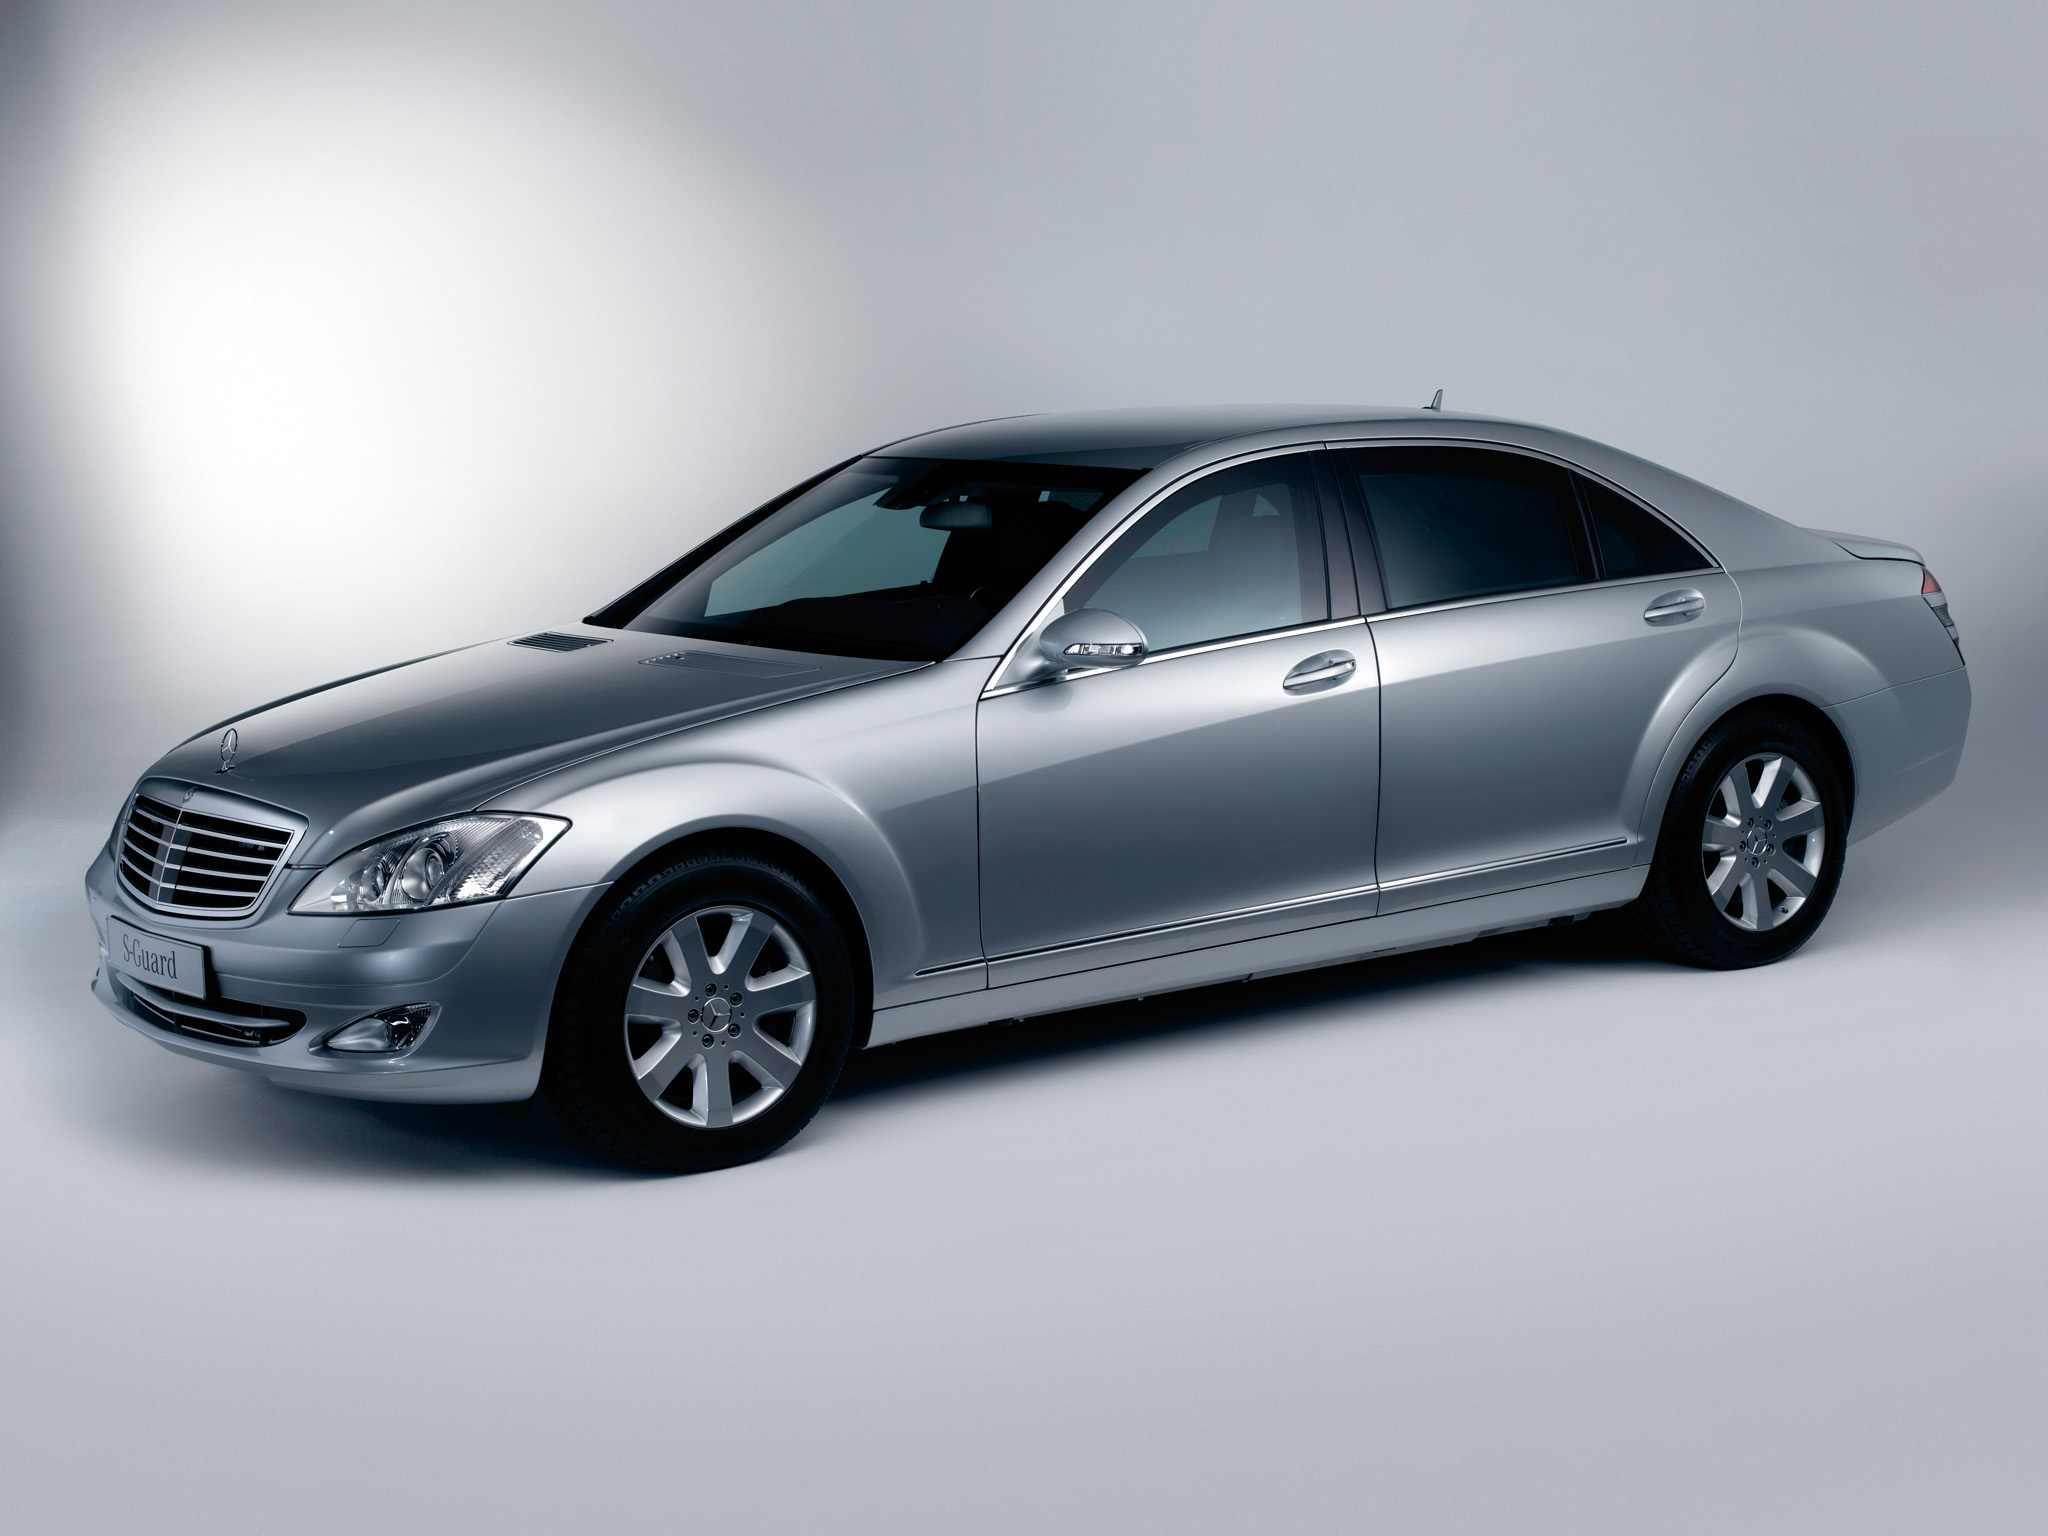 2007 armored mercedes benz s 600 guard w221 luxury h for Mercedes benz guard